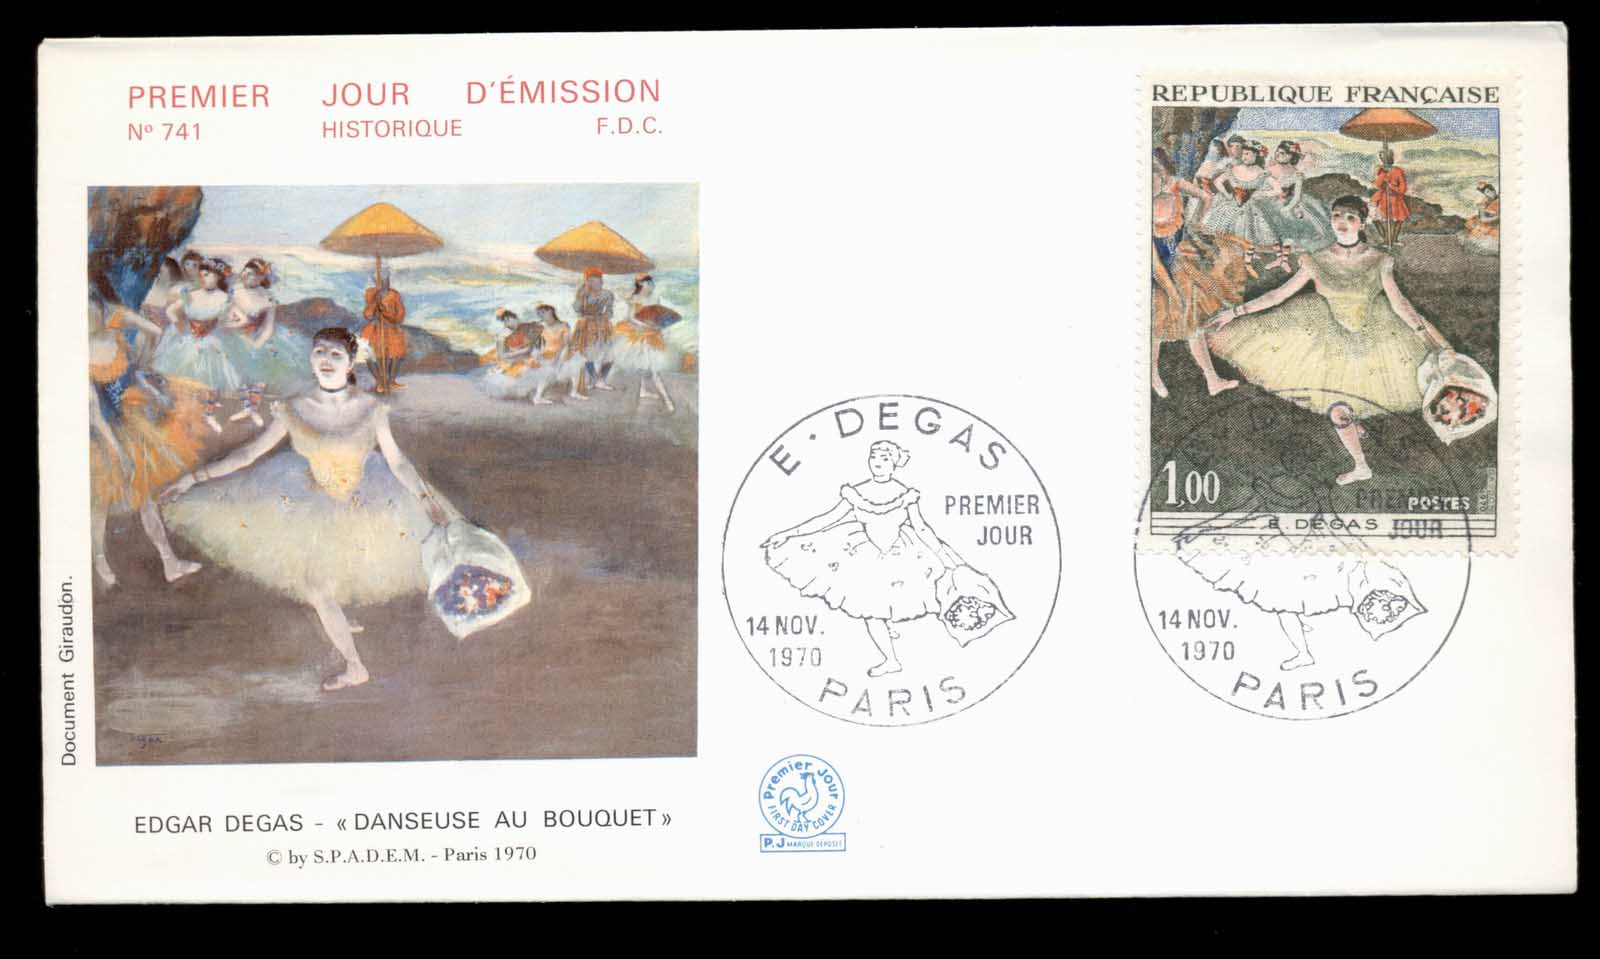 France 1970 Art, Dancer with Bouquet by Edgar Degas FDC